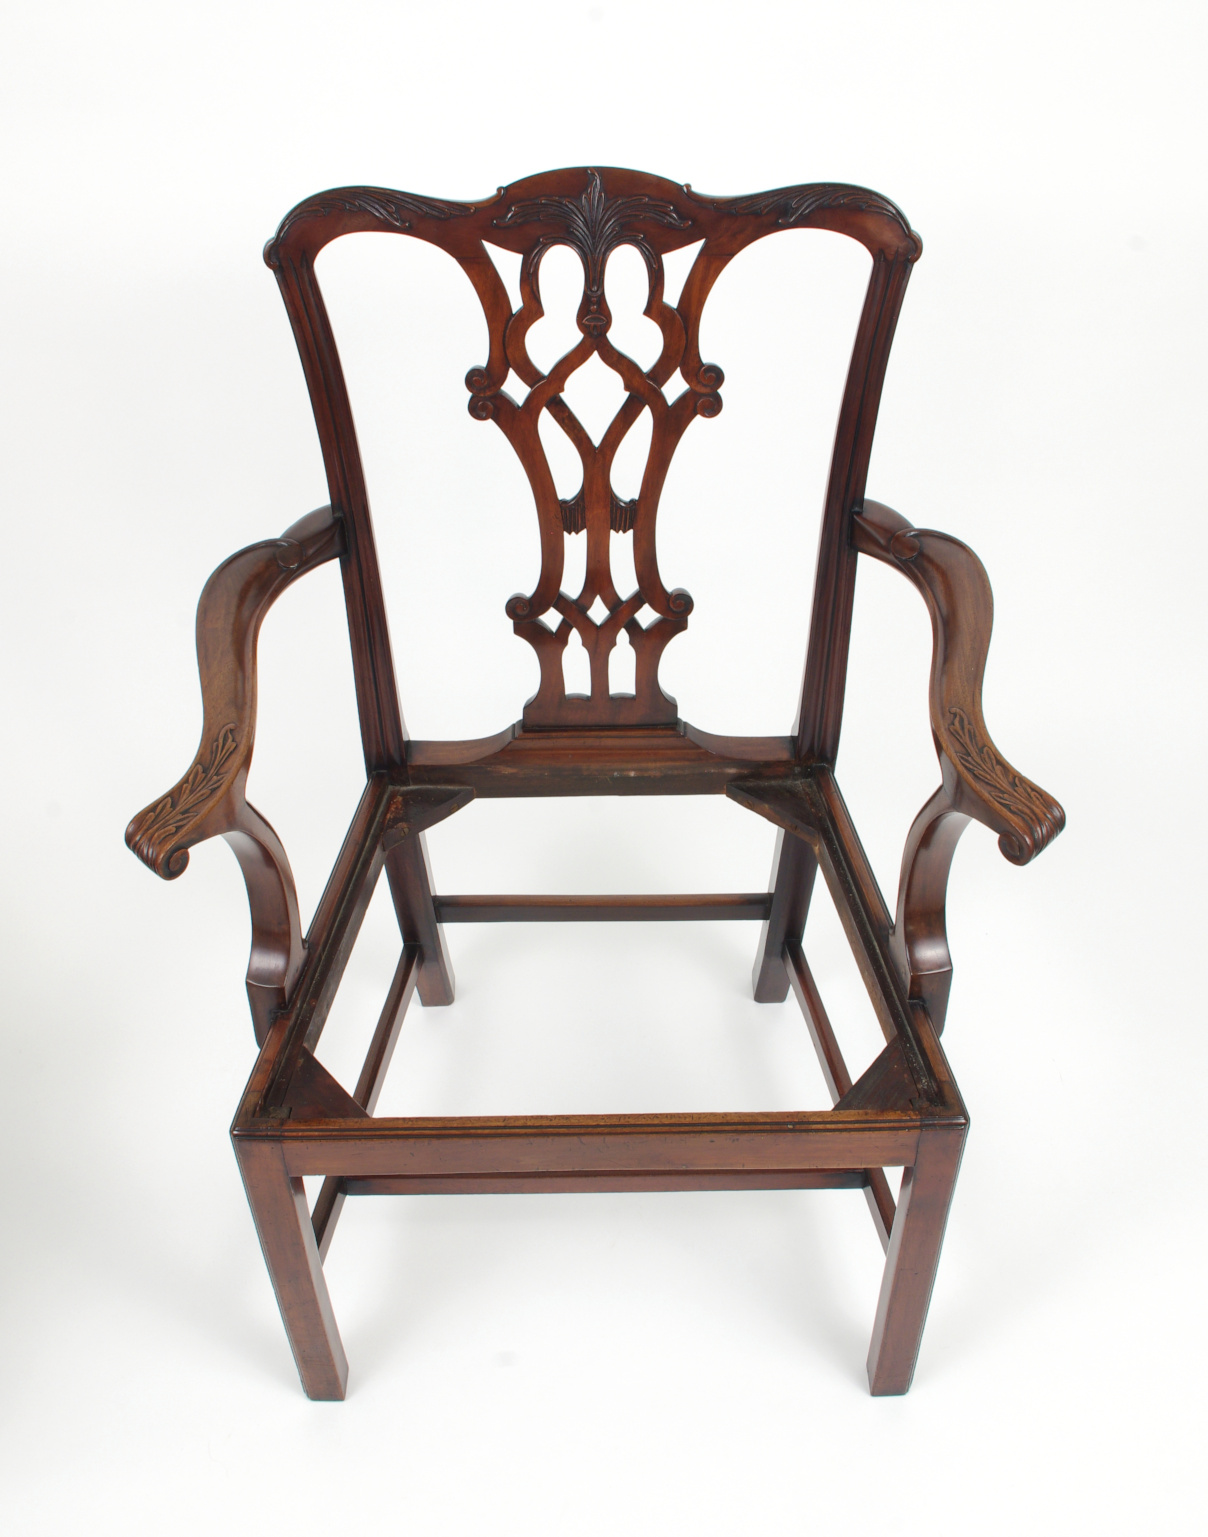 View 10: Set of Eight Chippendale Style Mahogany Dining Chairs (6+2), early 19th c.